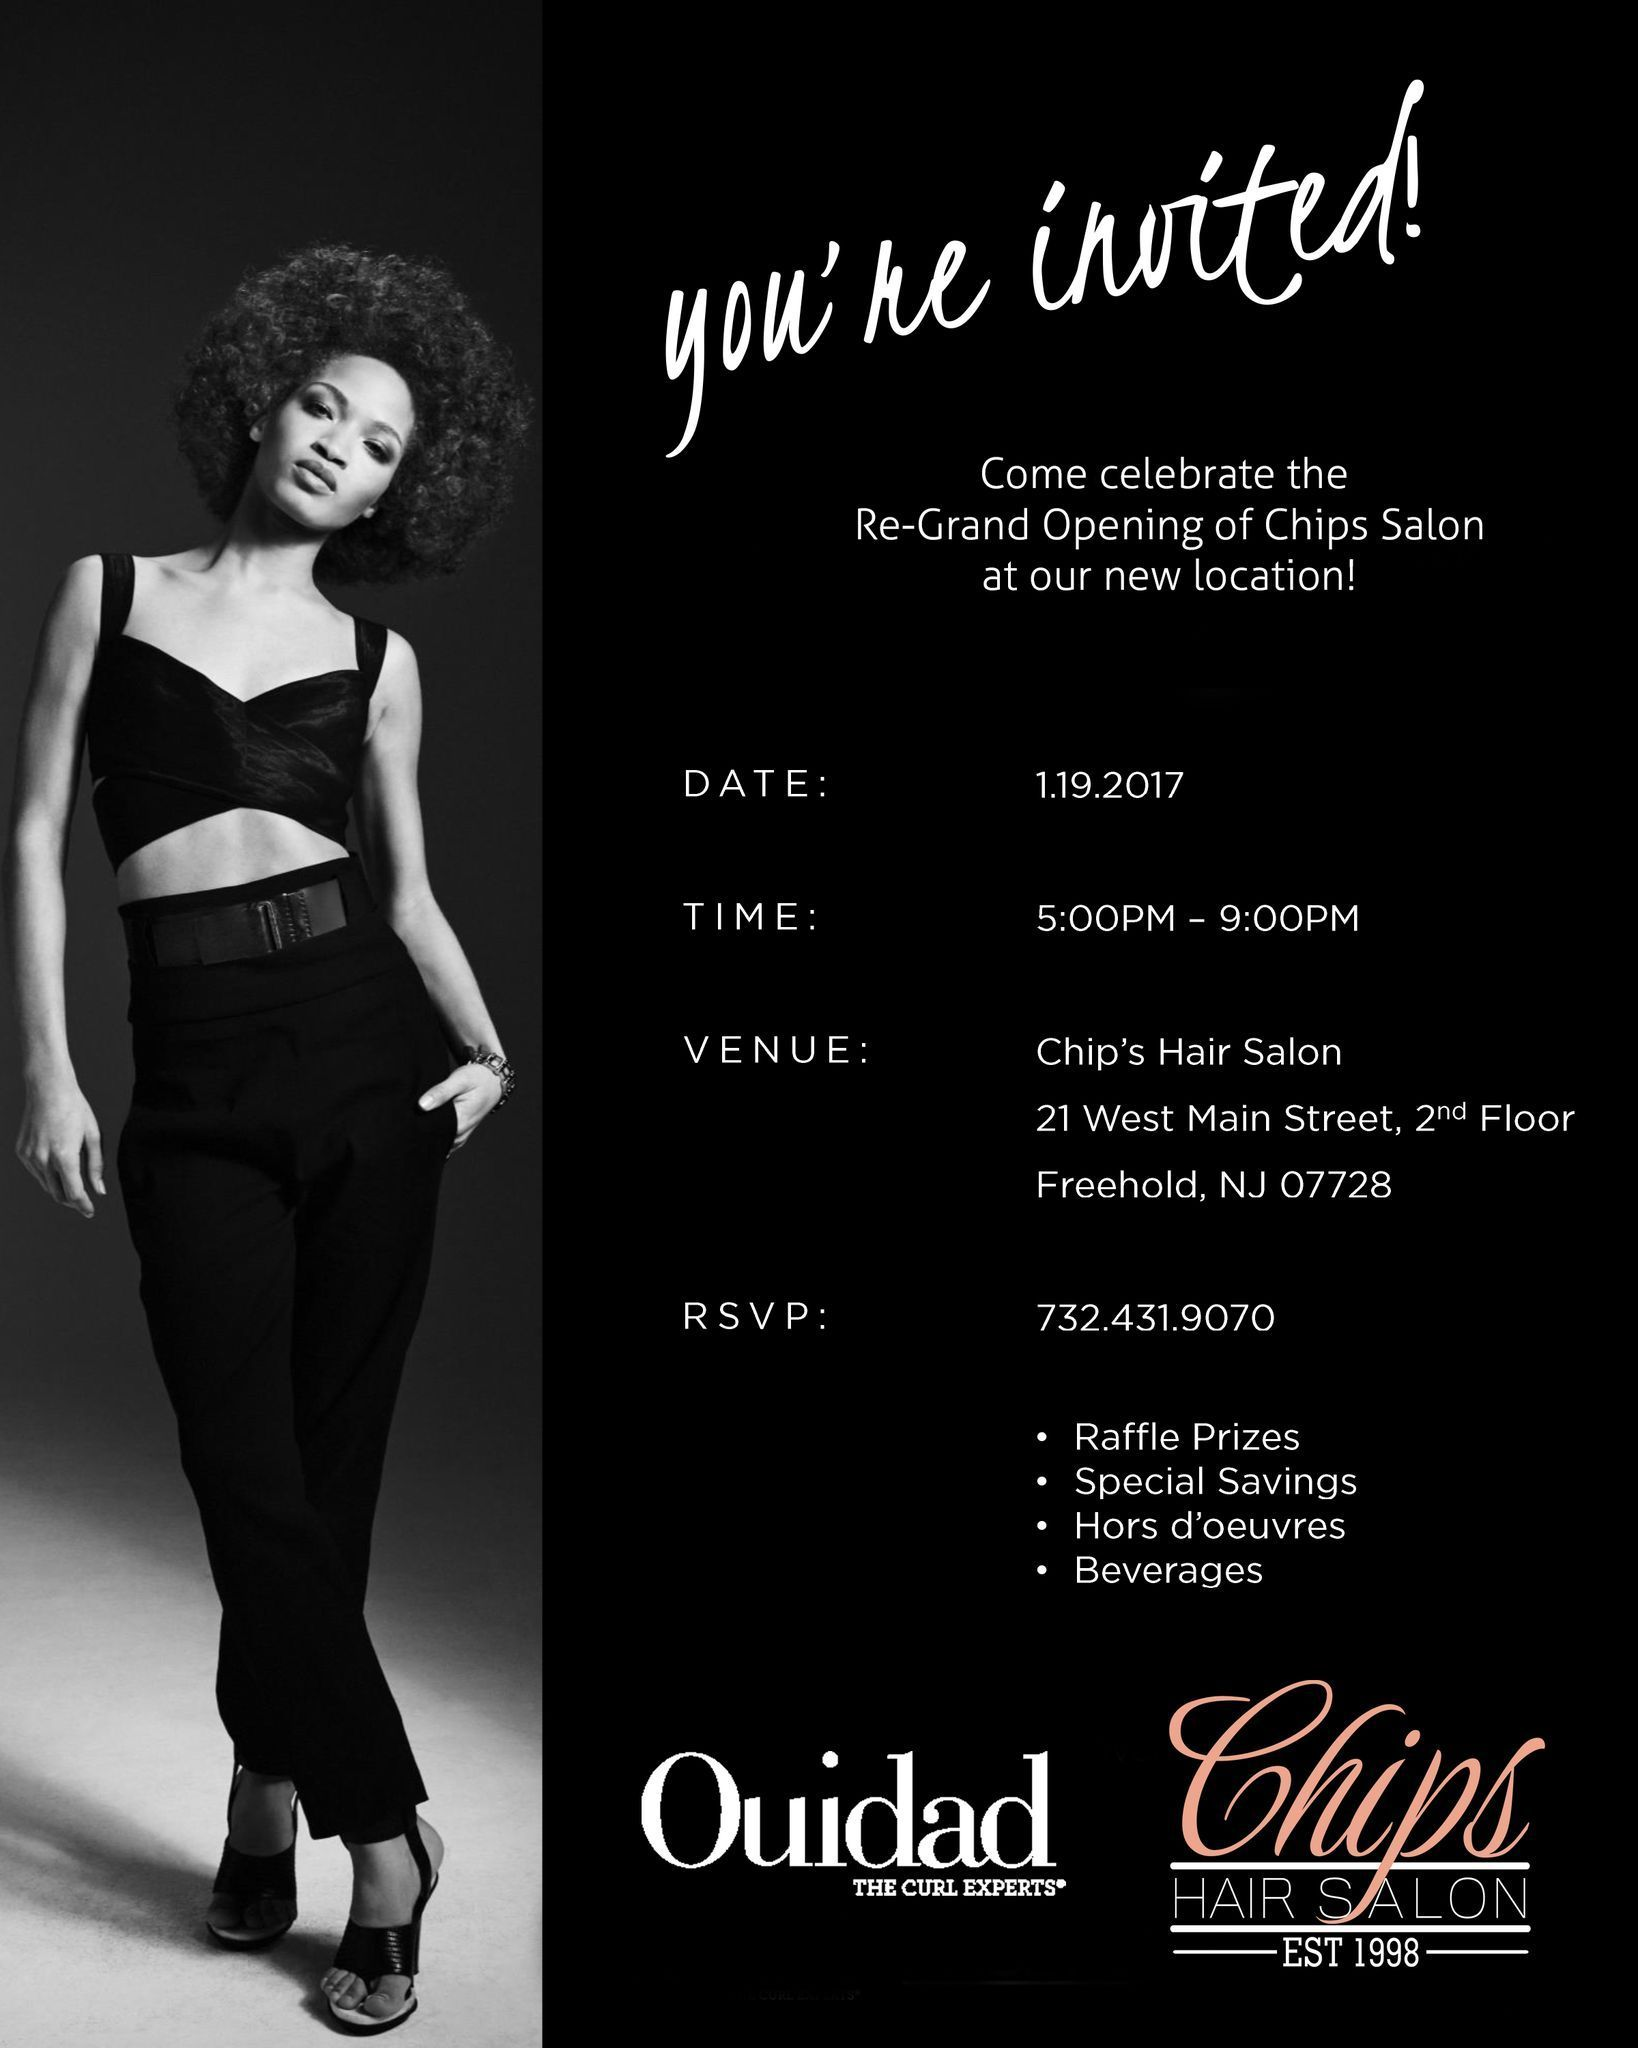 See You In An Hour Chipssalon Grandopening Grandreopening At 5pm